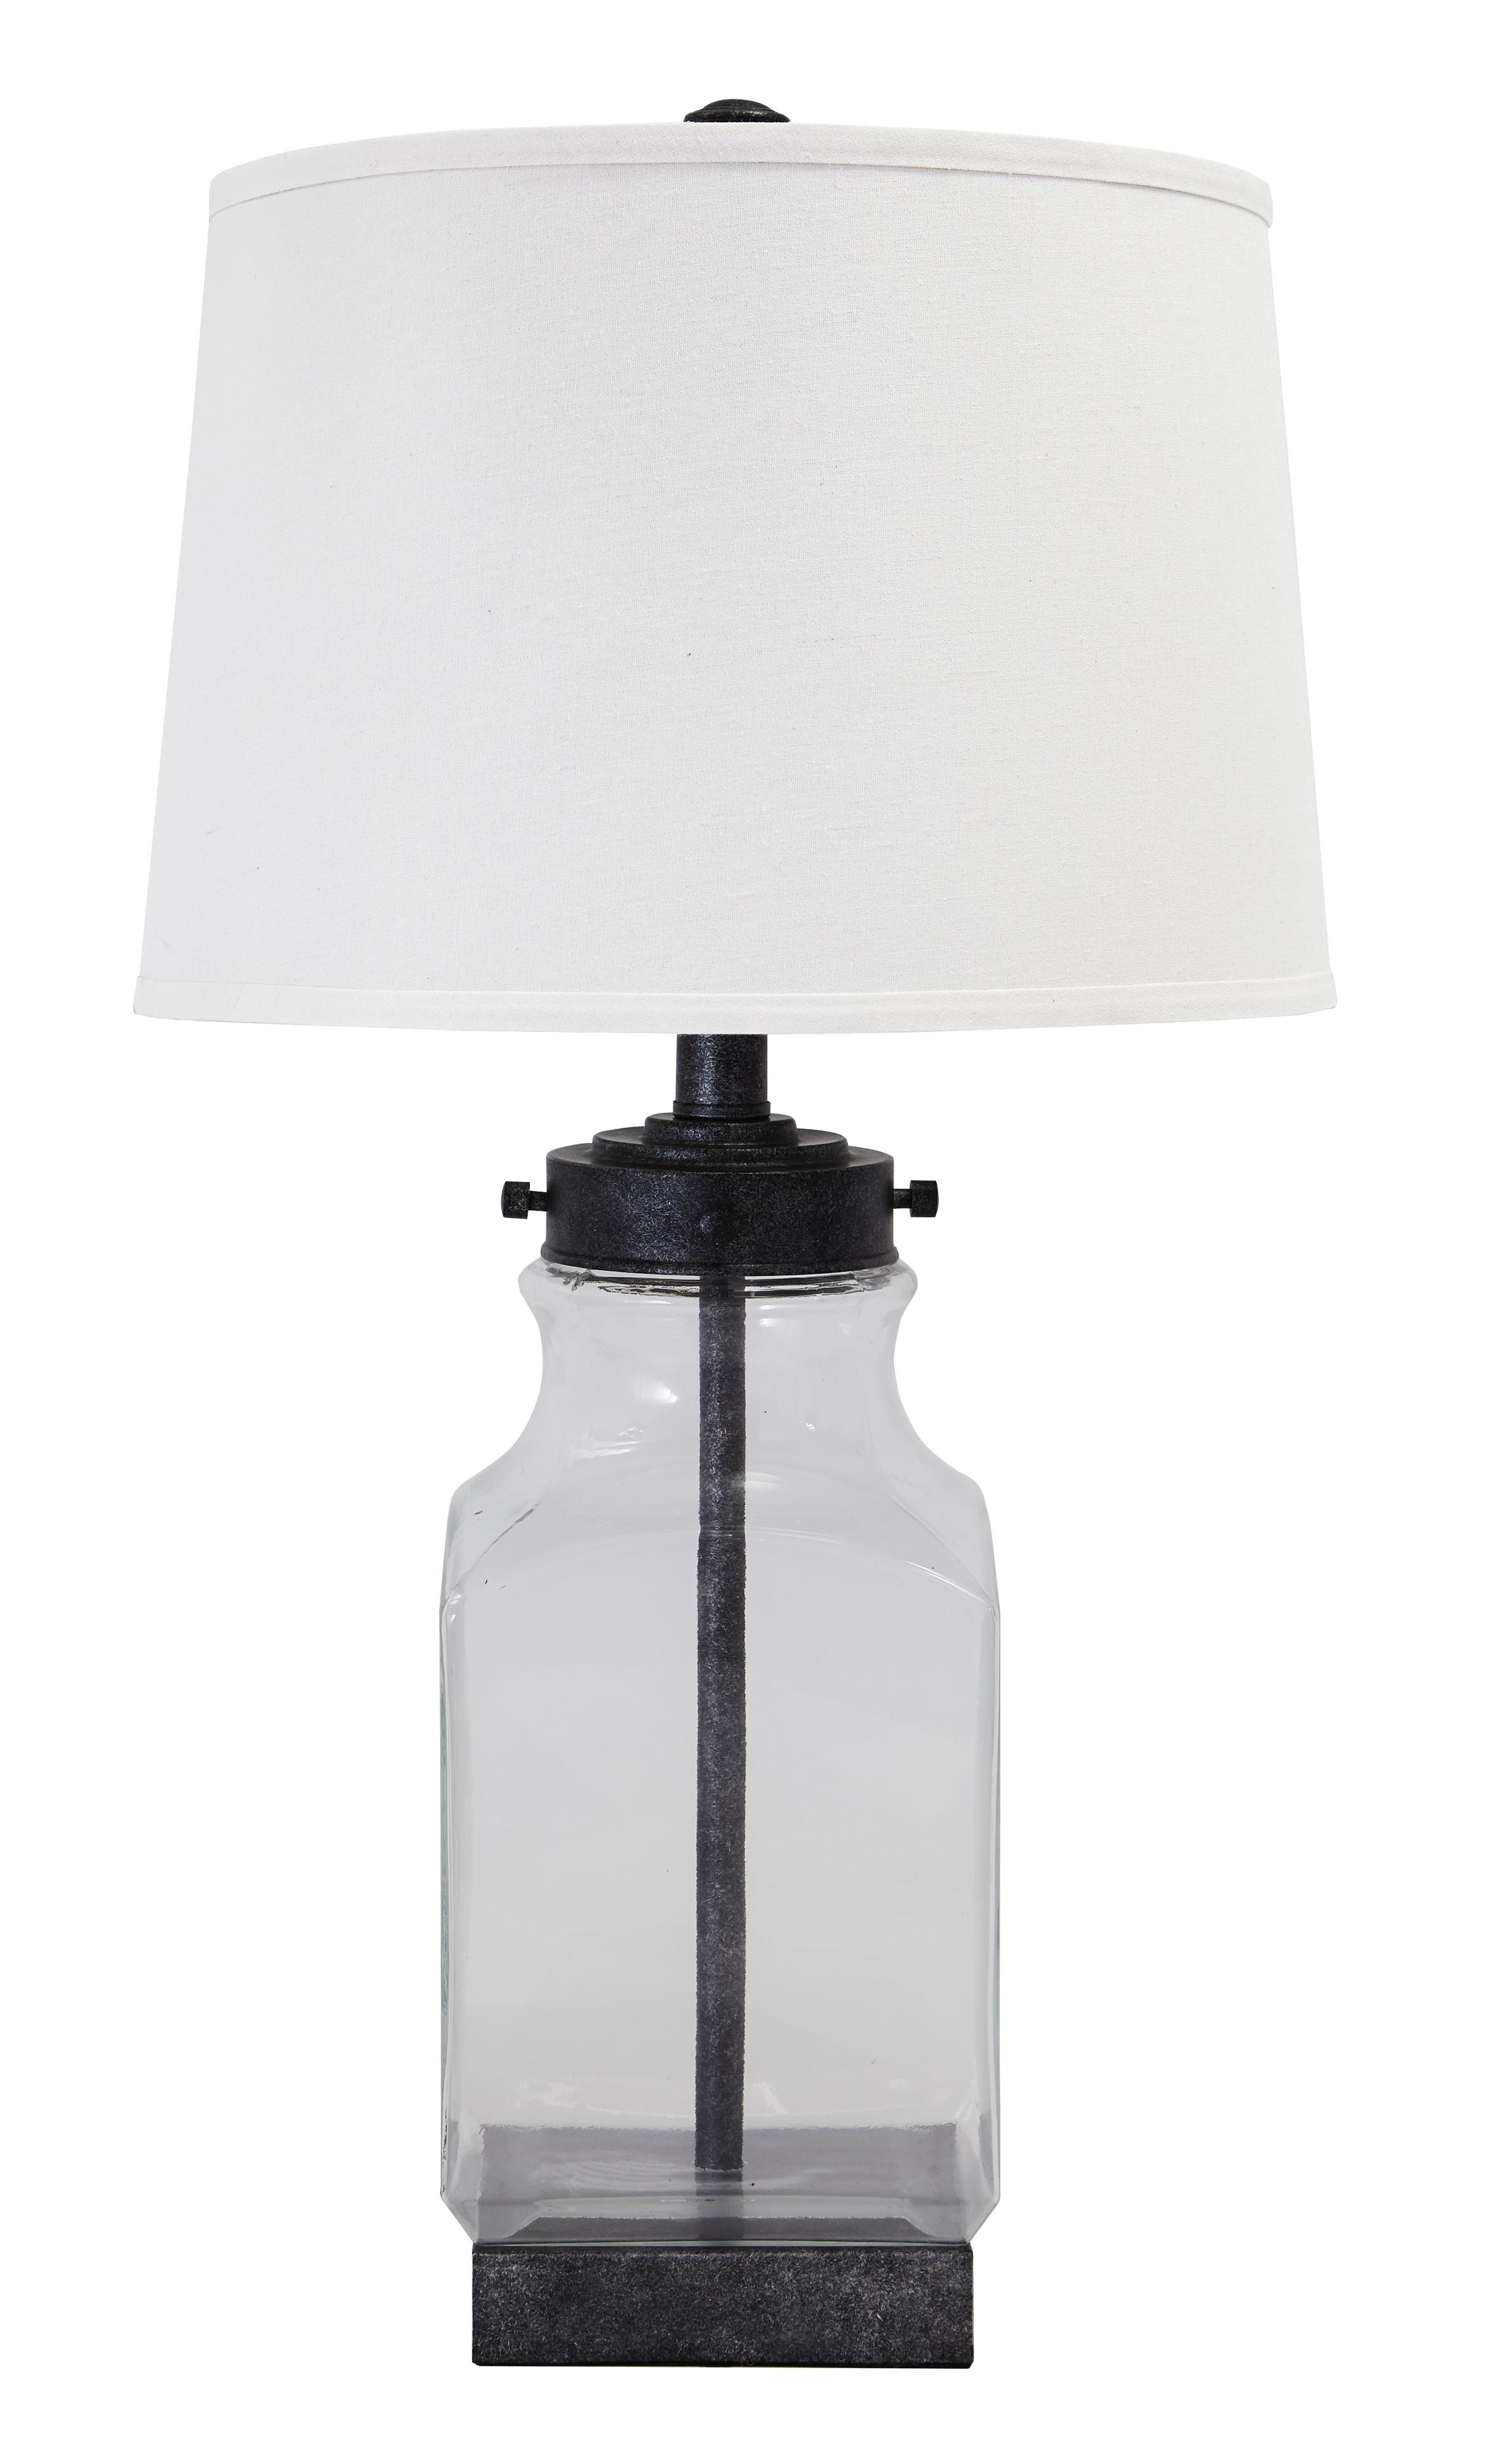 Signature Design by Ashley Lamps - Vintage Style Glass Table Lamp  - Item Number: L430144